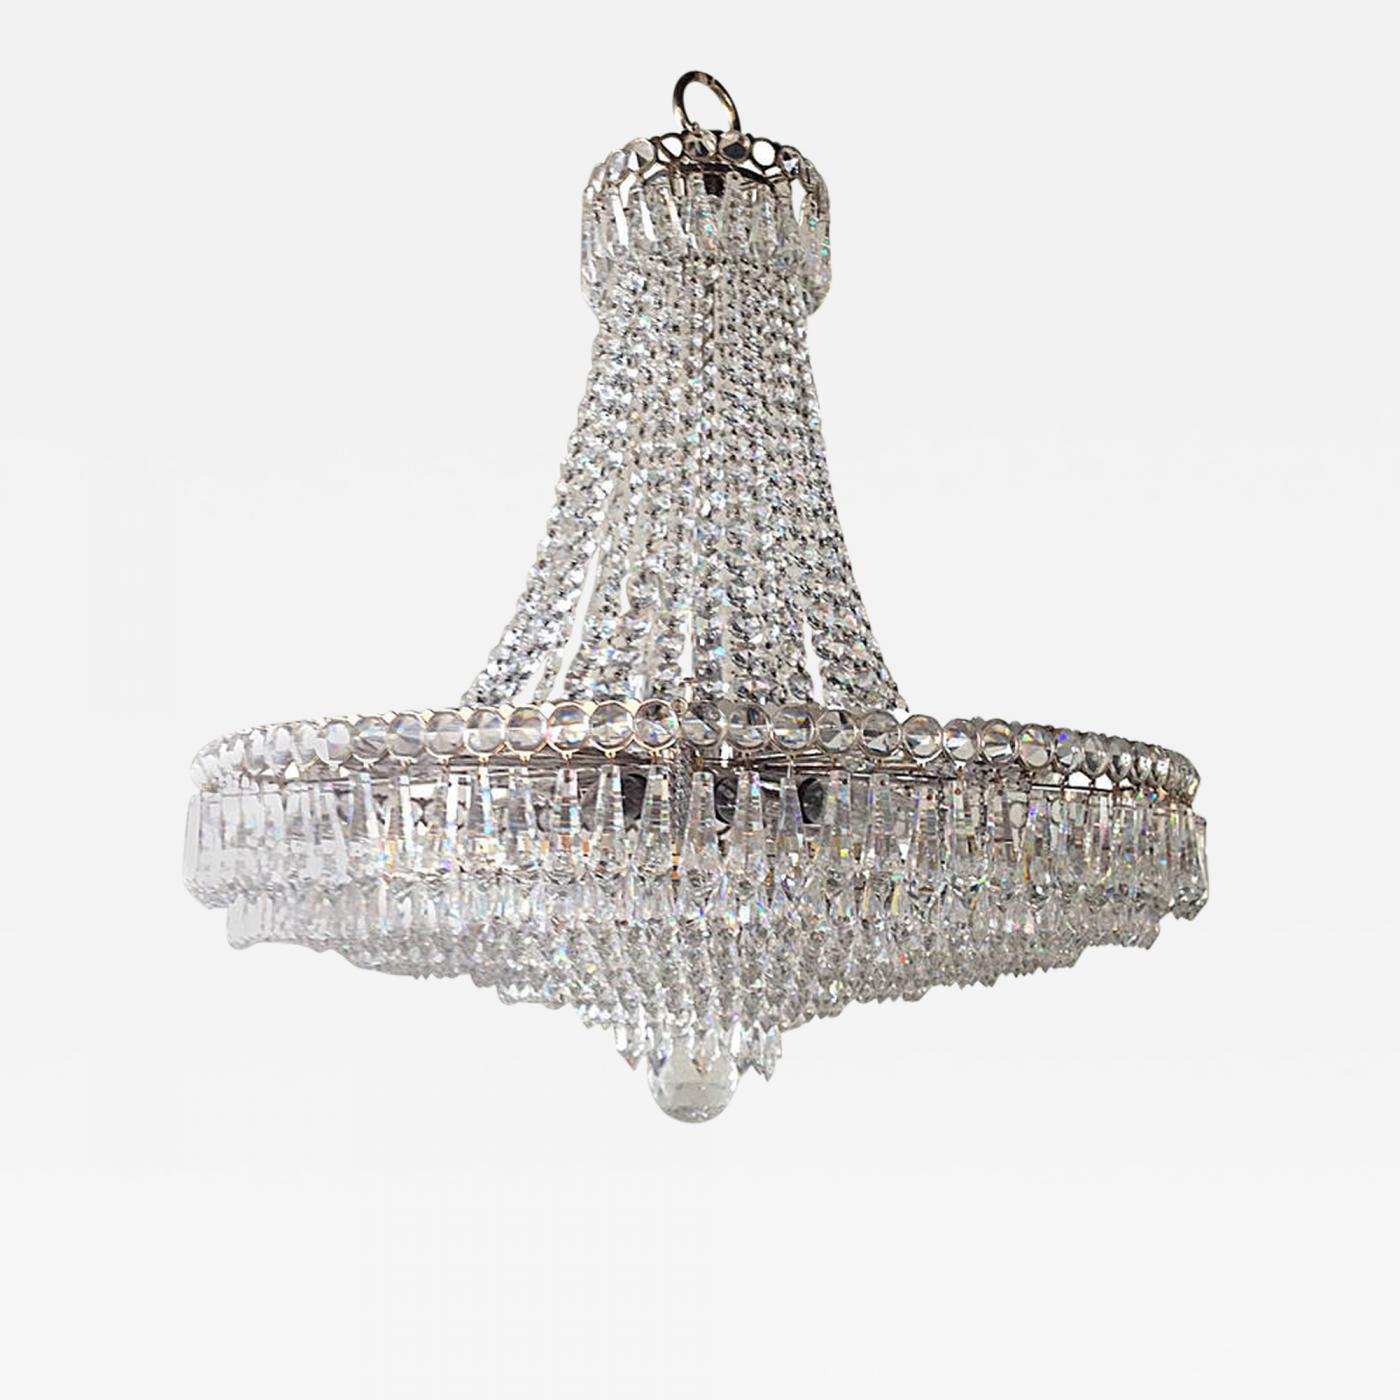 Strauss lighting strauss waterfall crystal hollywood regency listings furniture lighting chandeliers and pendants mozeypictures Choice Image